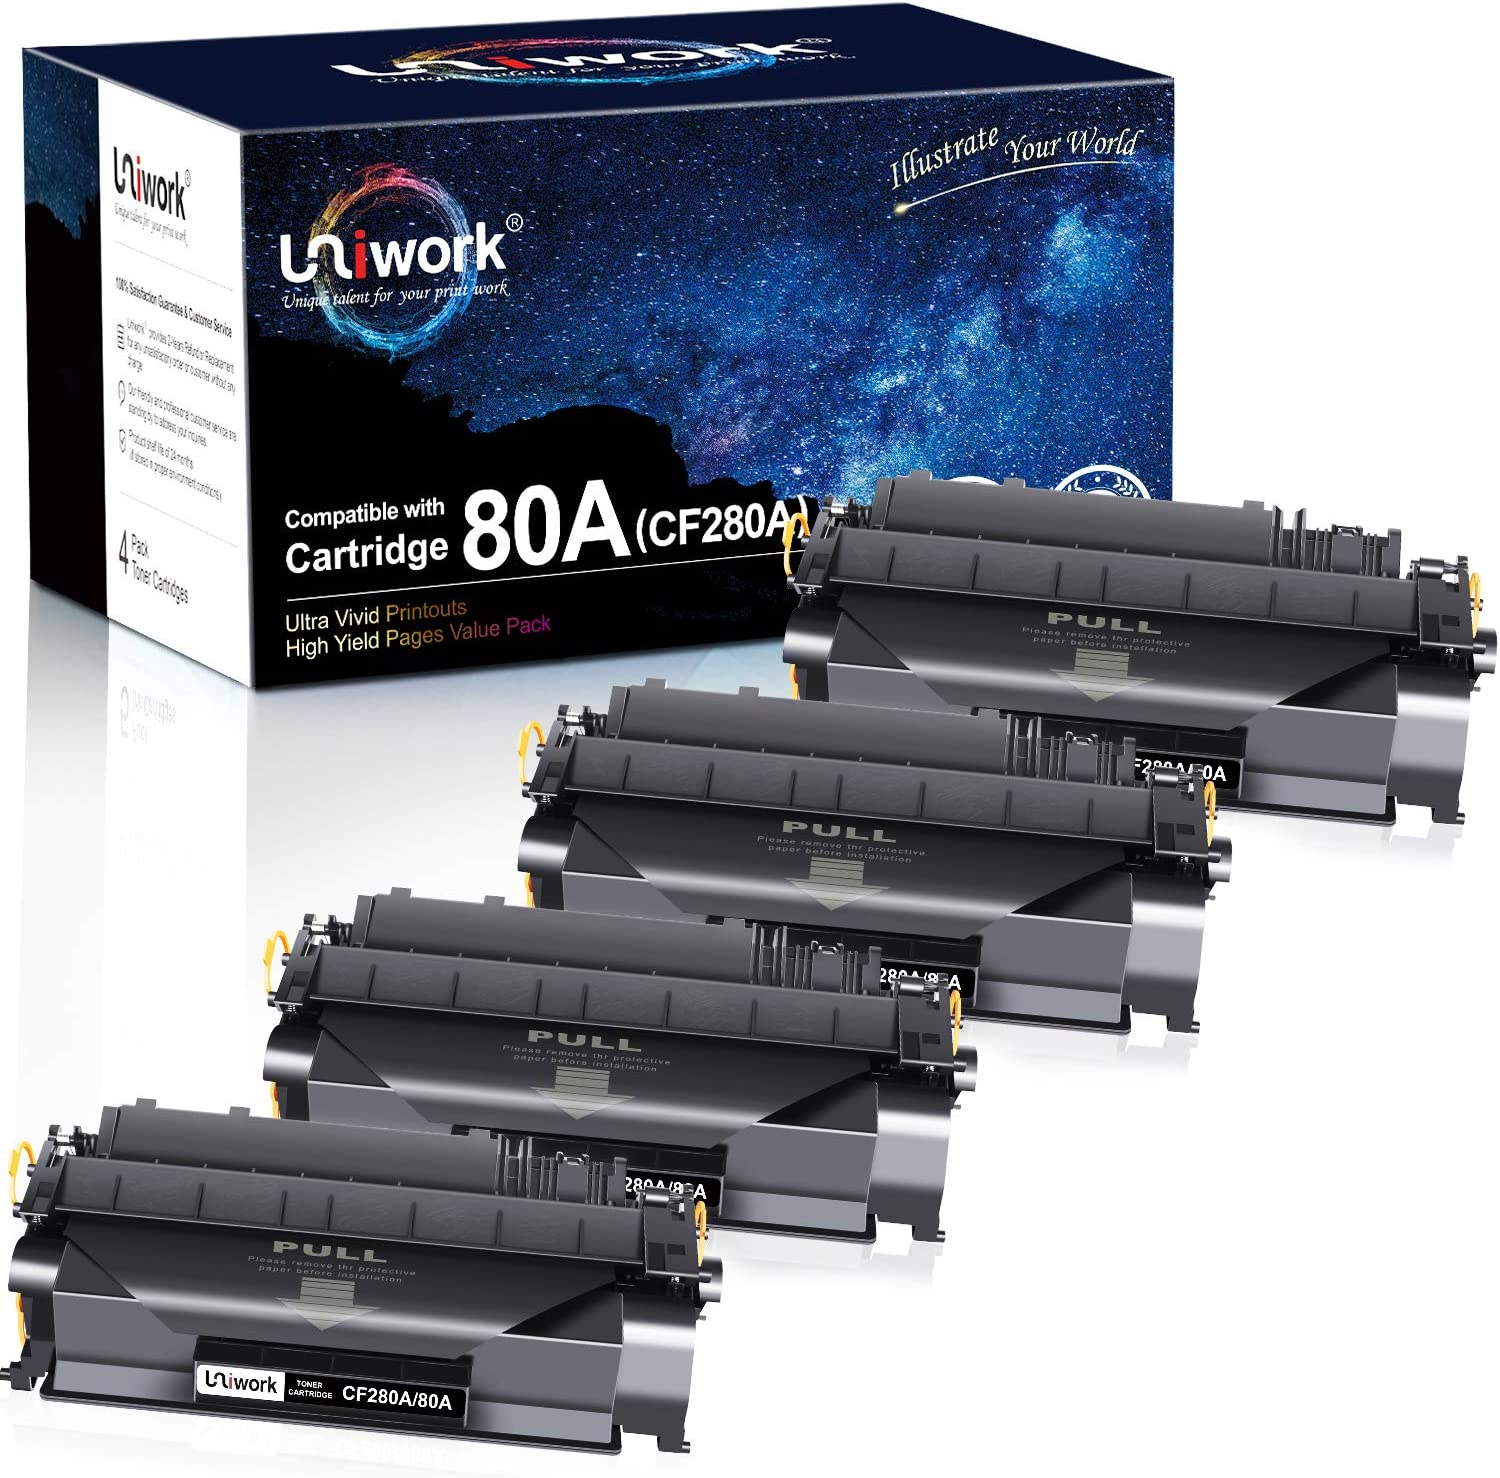 Uniwork Compatible Toner Cartridge Replacement for HP 80A CF280A 80X CF280X 05A CE505A for Laserjet Pro 400 M401A M401D M401N M401DN M401DNE M401DW, MFP M425DN Printer (4 Black)